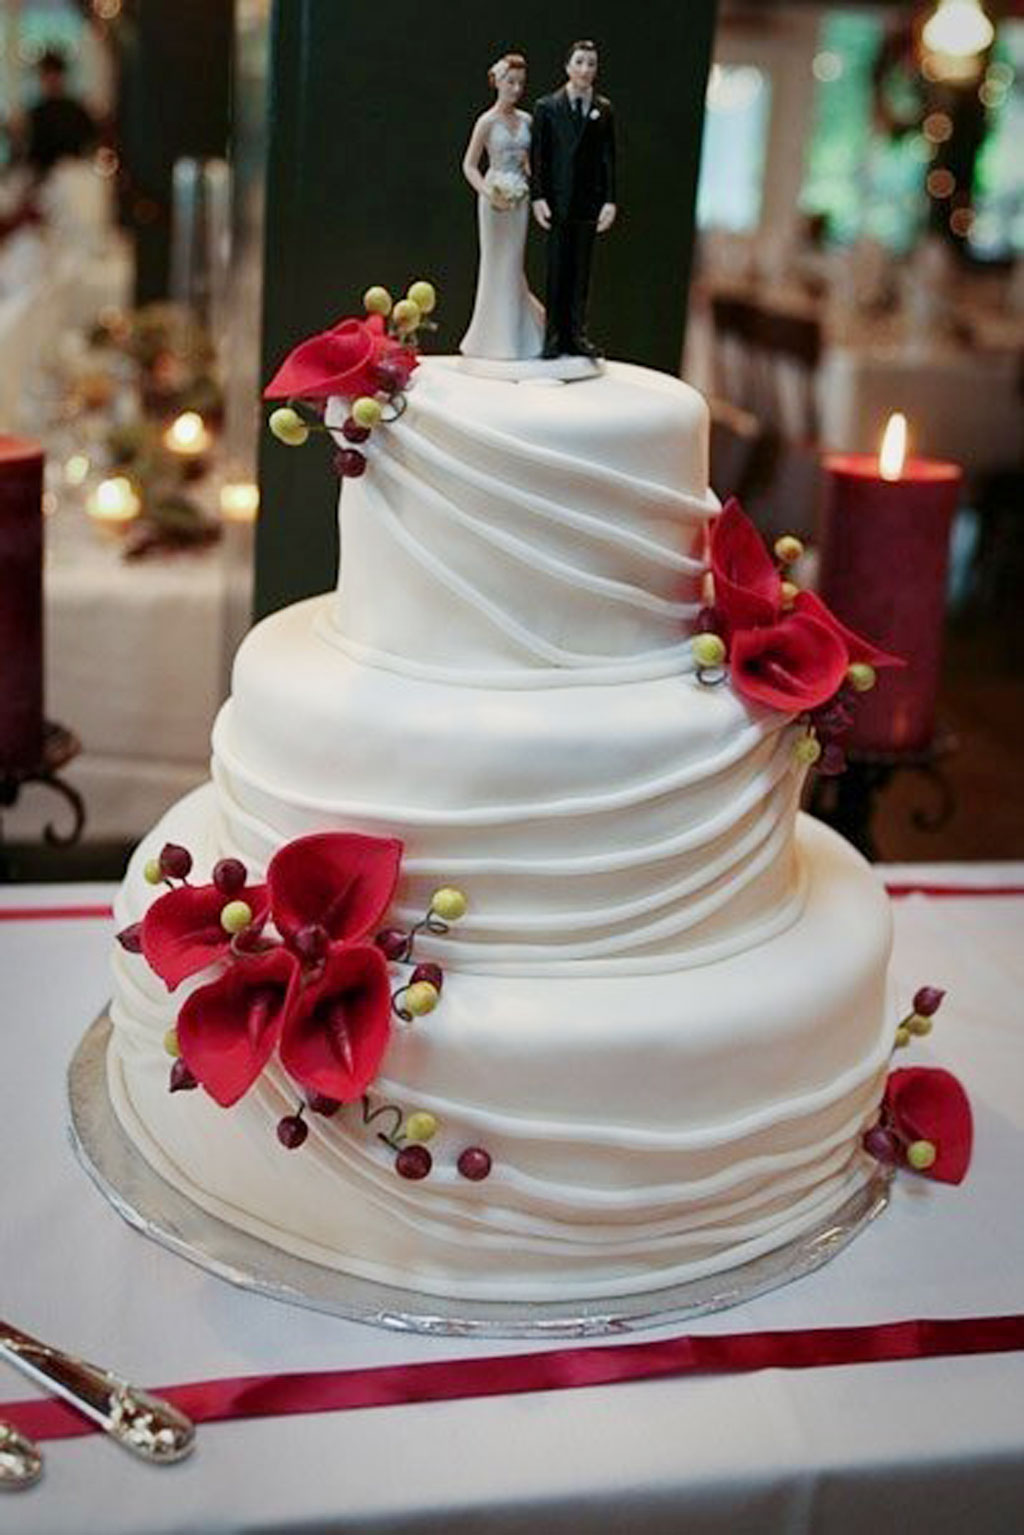 Red Calla Lily Wedding Cake Design 2 Picture In